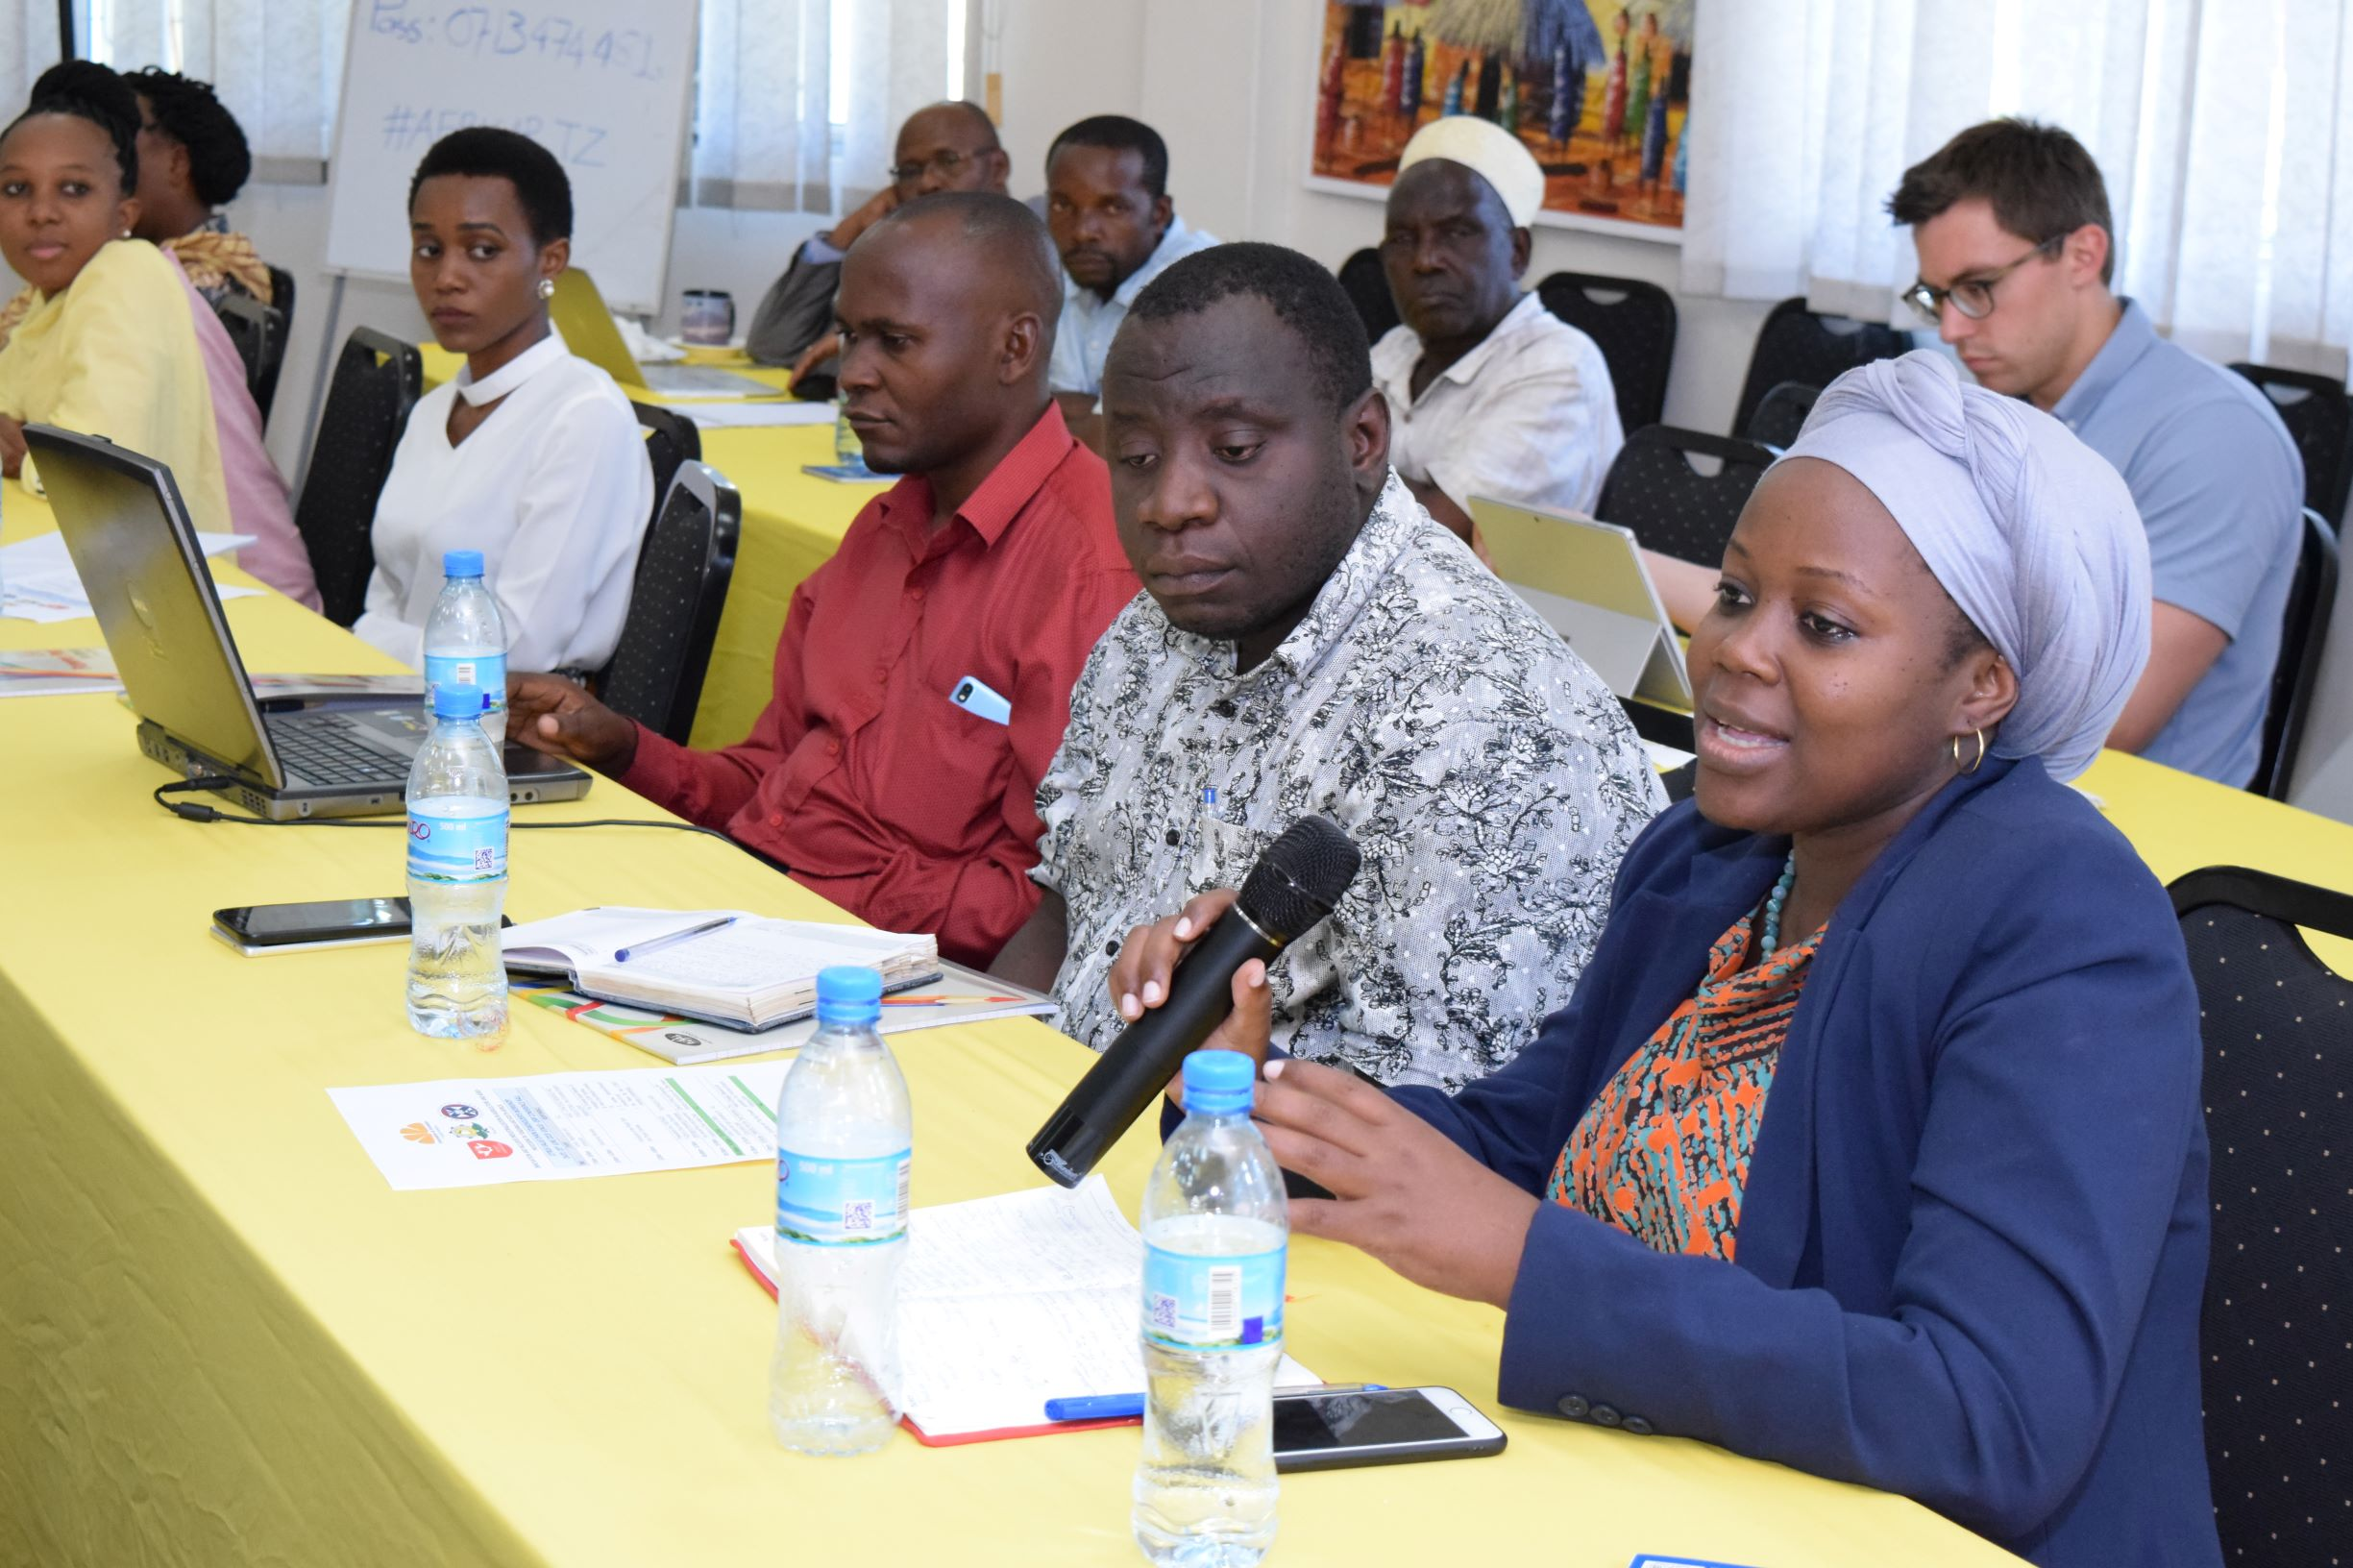 Contributions to Day 3 at the Citrus Stakeholders Workshop on the 20th June, 2019.